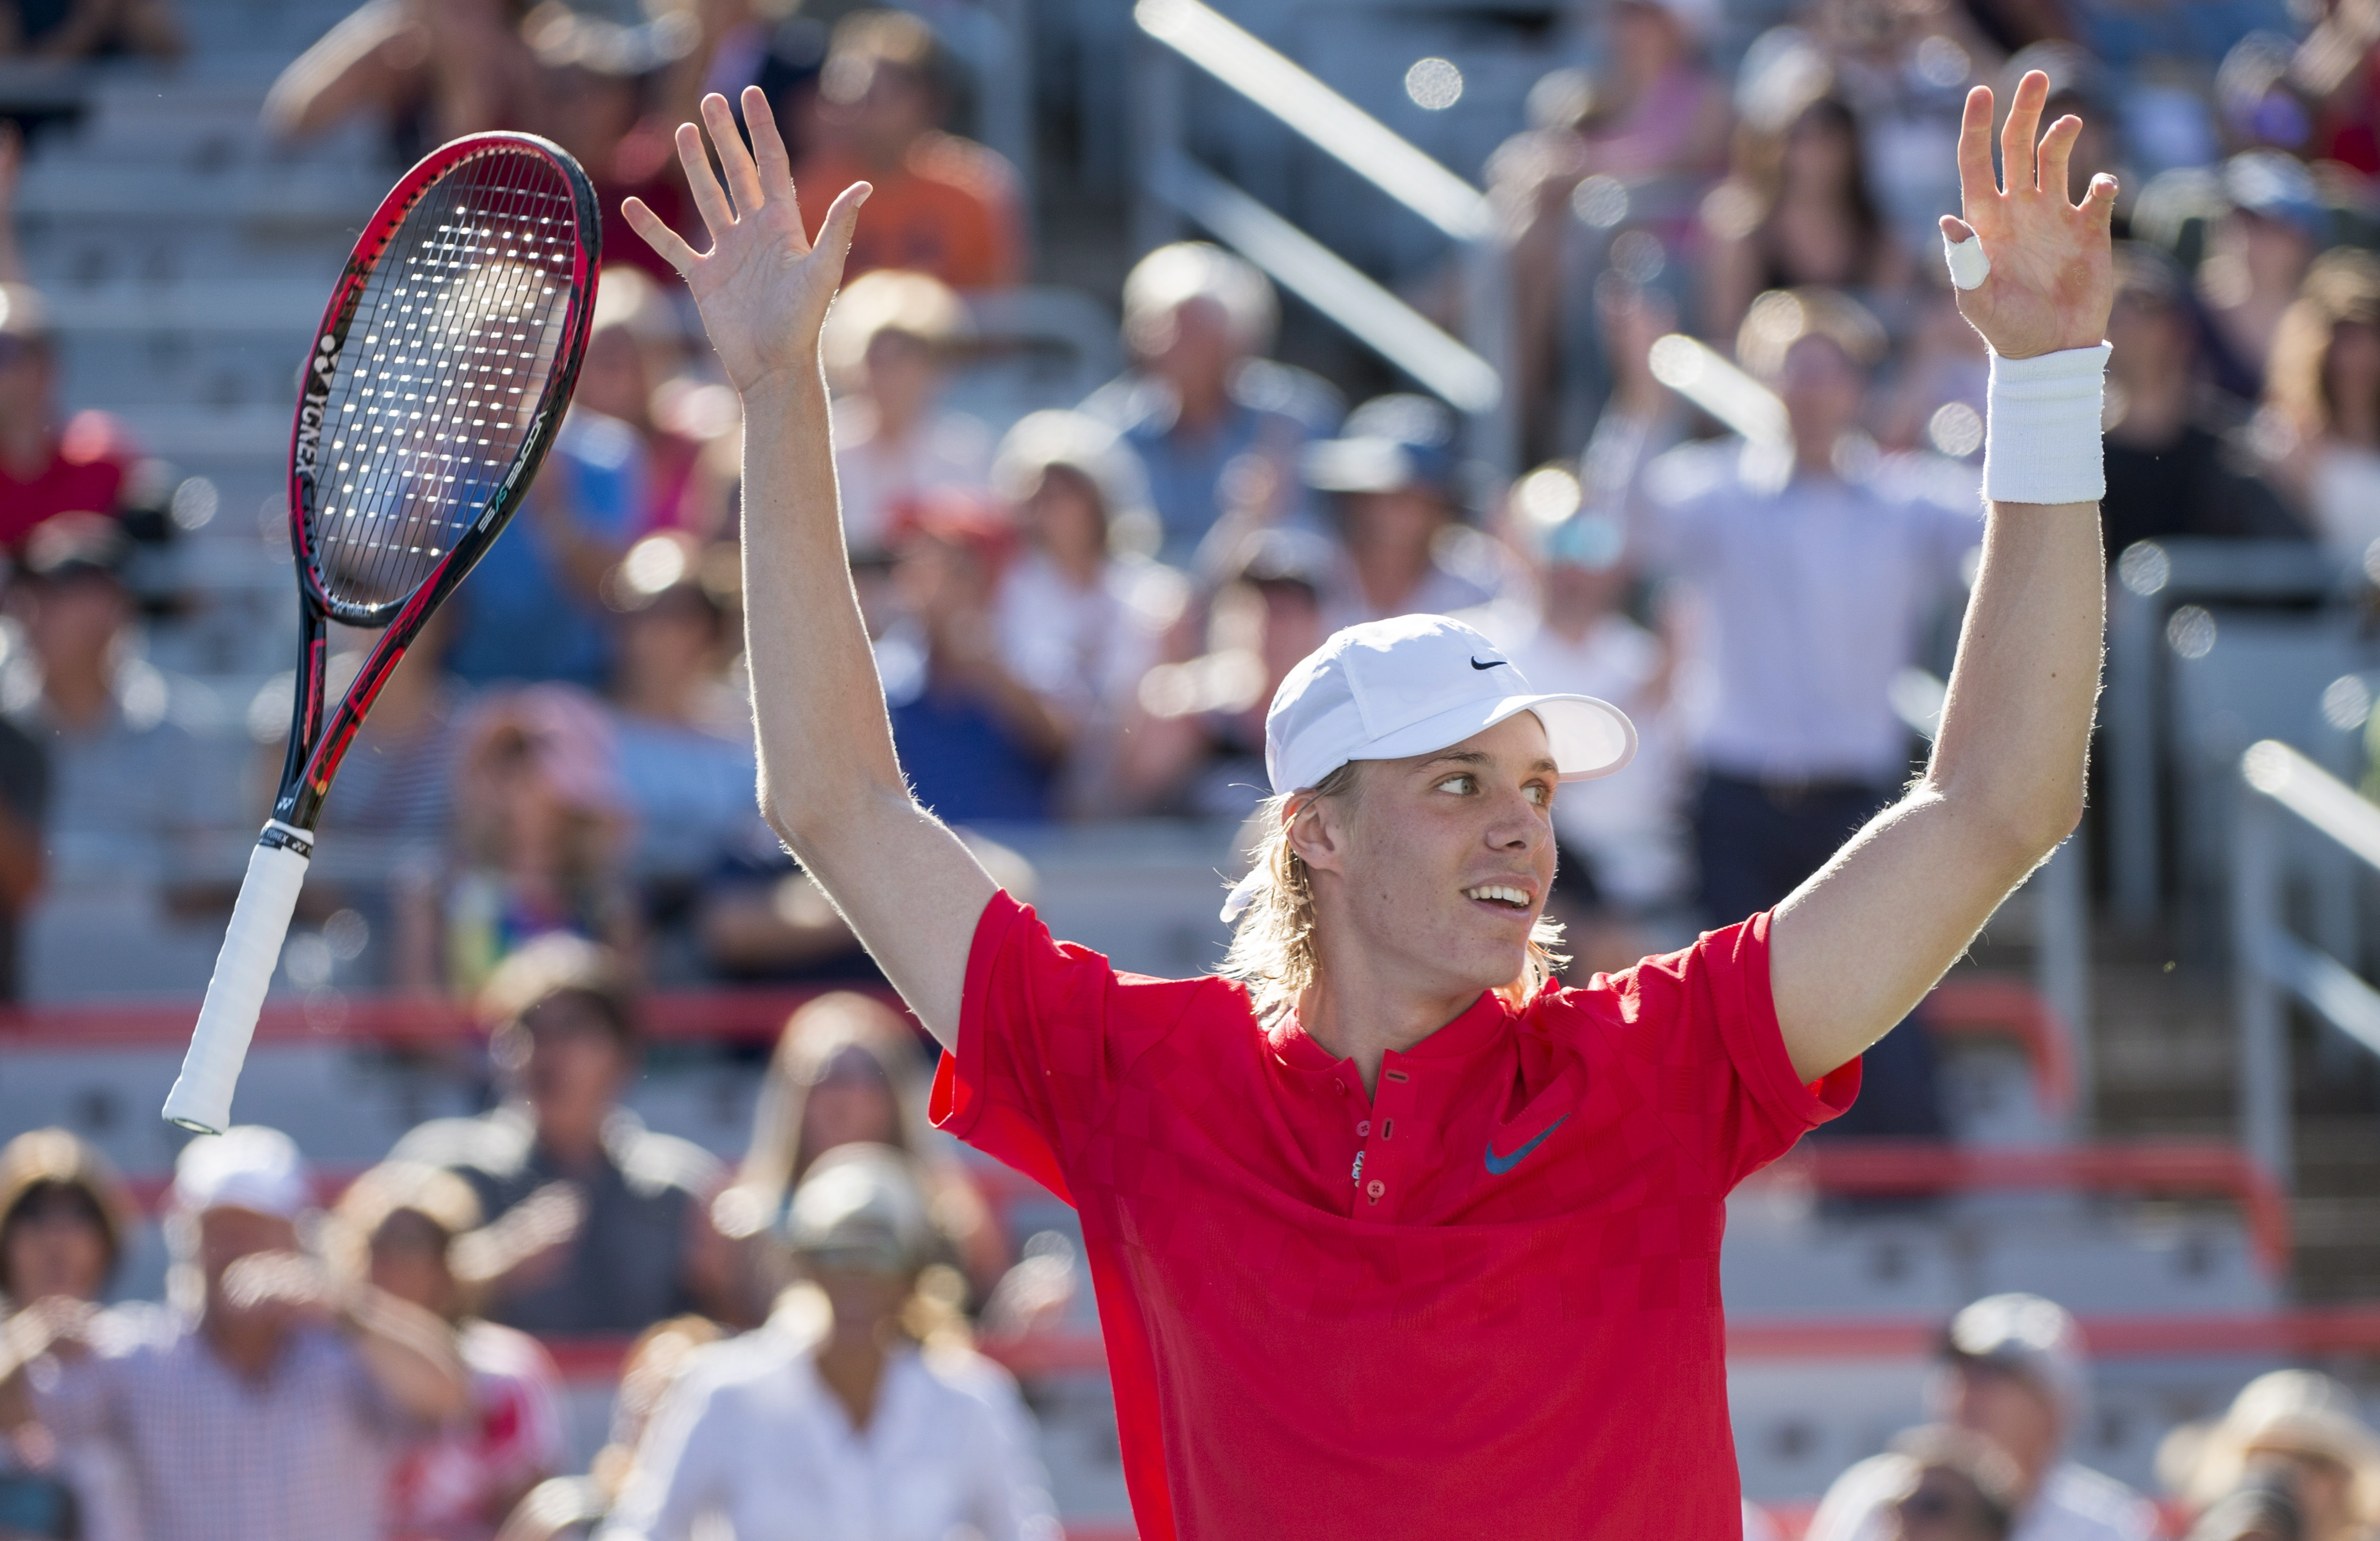 Denis Shapovalov of Canada celebrates after beating Rogerio Dutra Silva of Brazil during the first round of the Rogers Cup tennis tournament, Tuesday Aug. 8, 2017 in Montreal. (Paul Chiasson/The Canadian Press via AP)